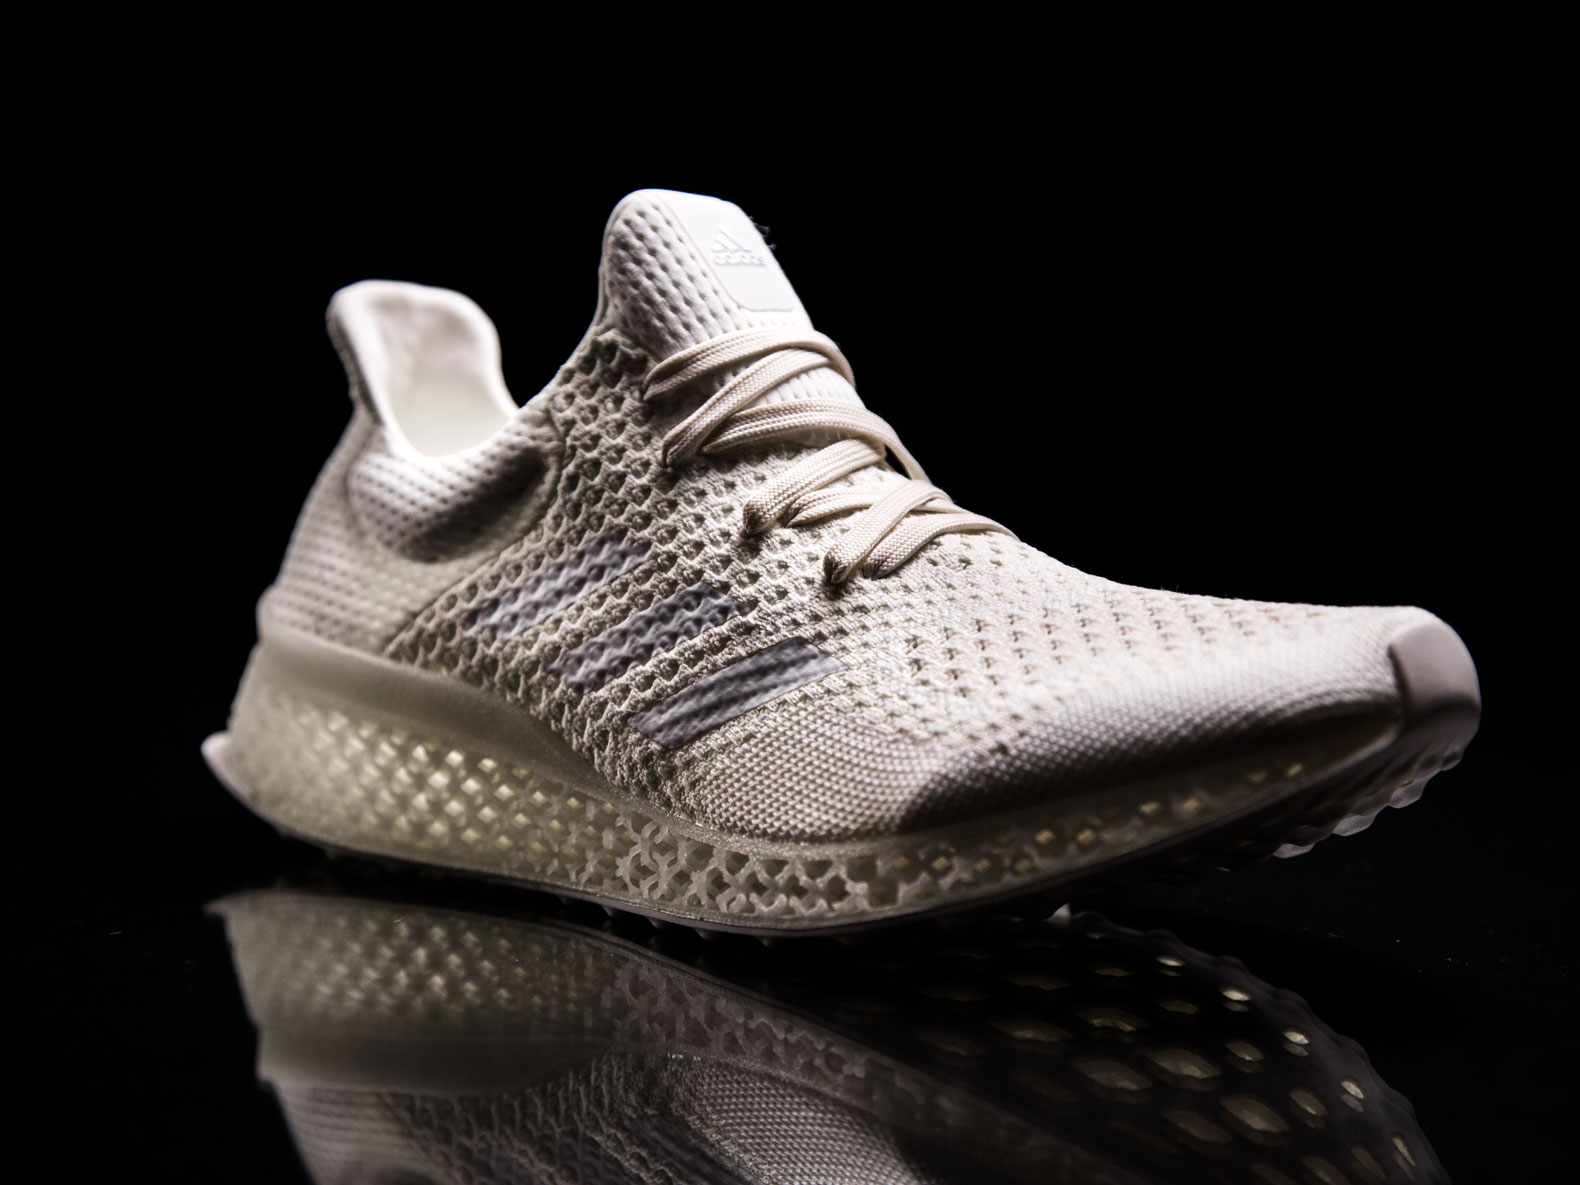 Adidas Introduces Running Shoe With 3D-Printed Materials